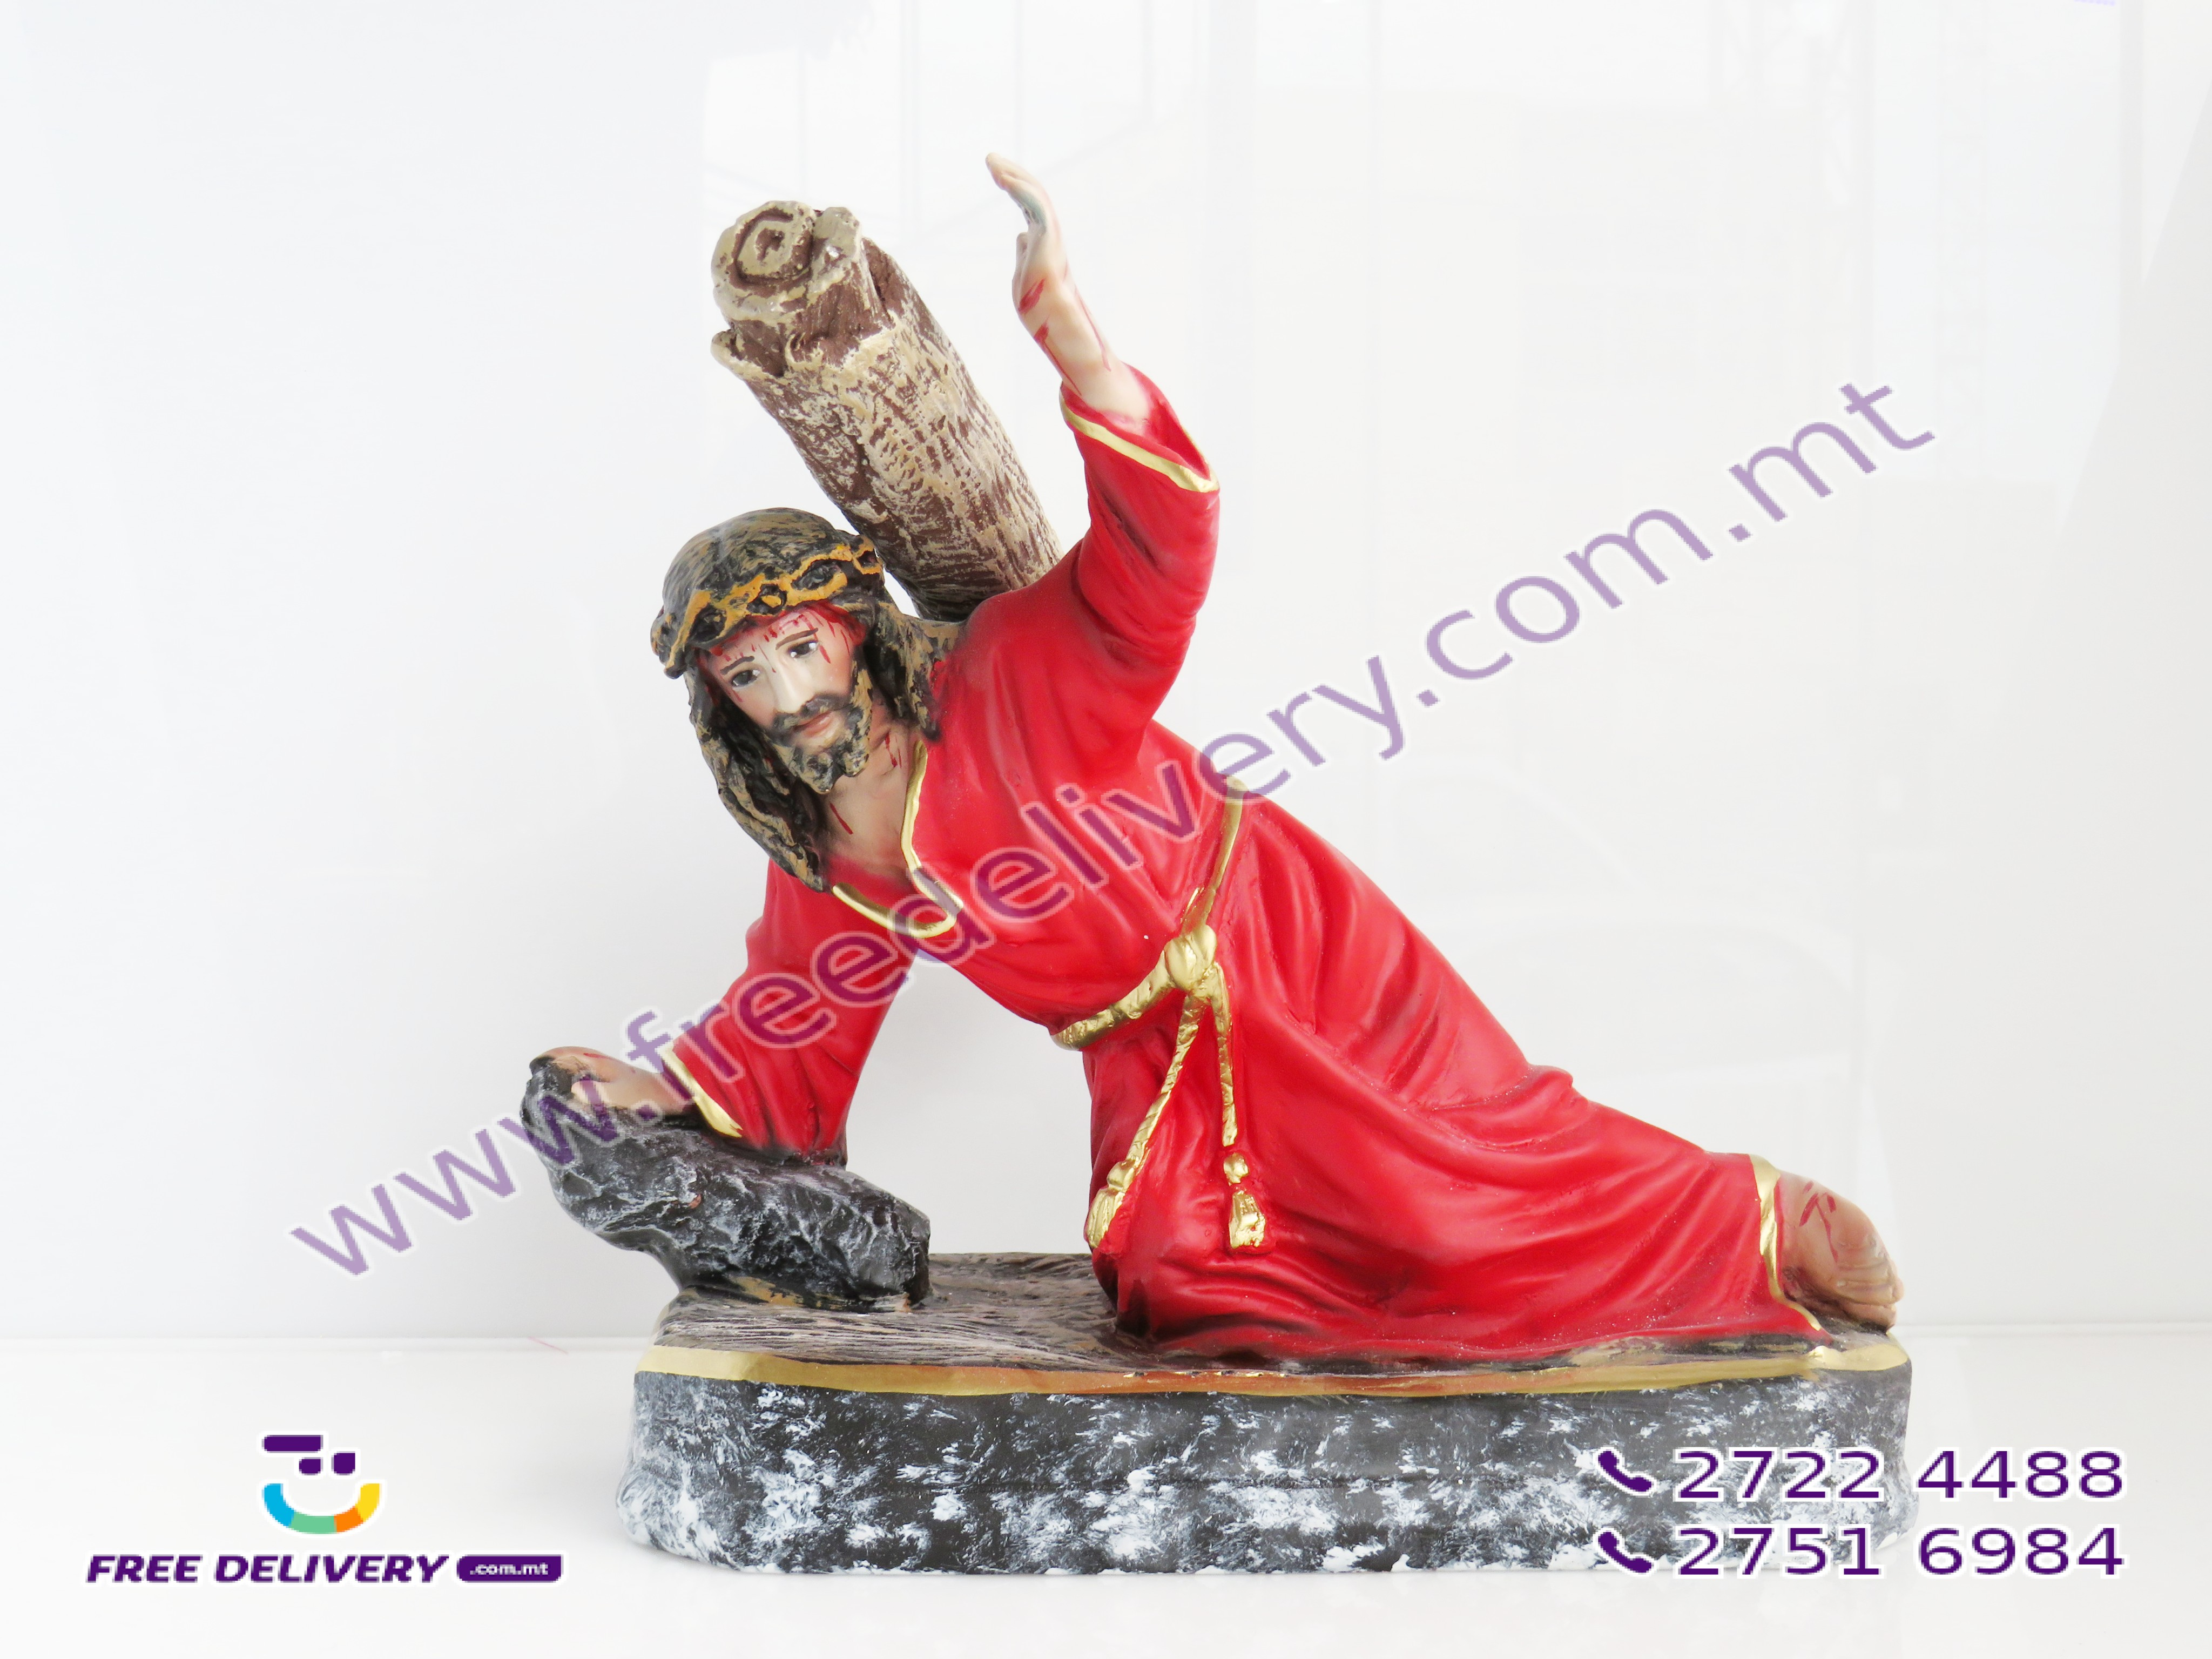 """REDENTUR"". CHRIST THE REDEEMER. SIZE 30CMS. NORMAL FINISH. MODERN STYLE"